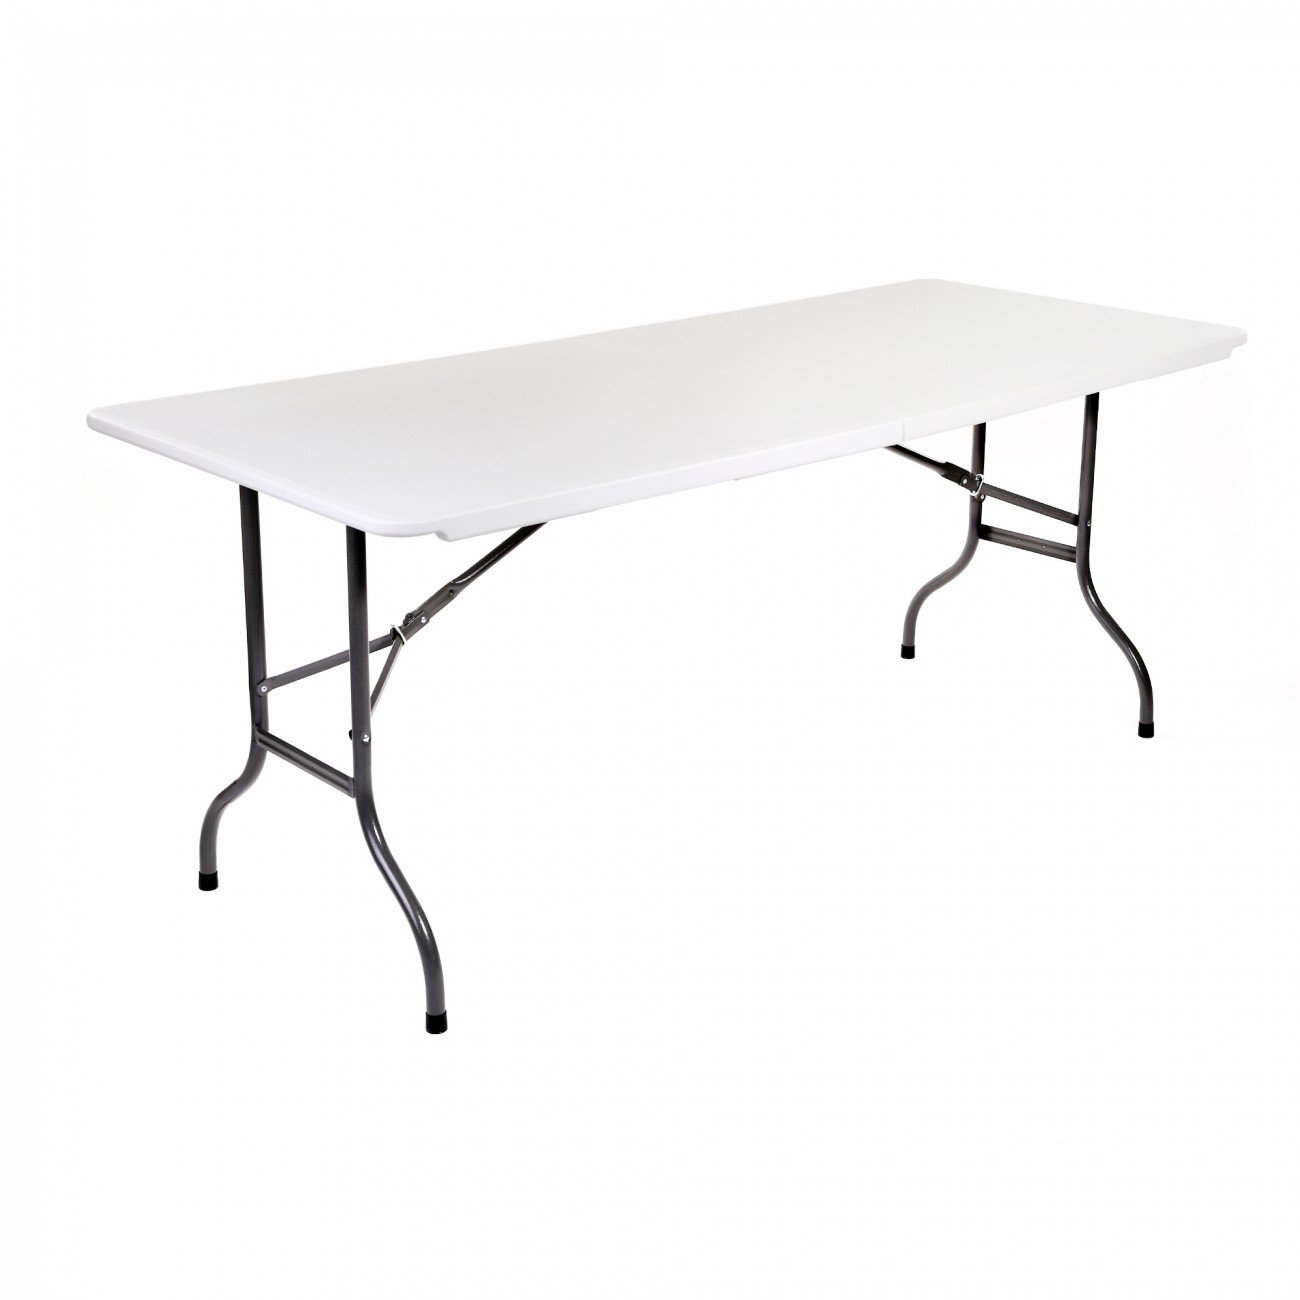 Acheter table pliante table pliable table rabattable table escamotable - Table de salon pliante ...